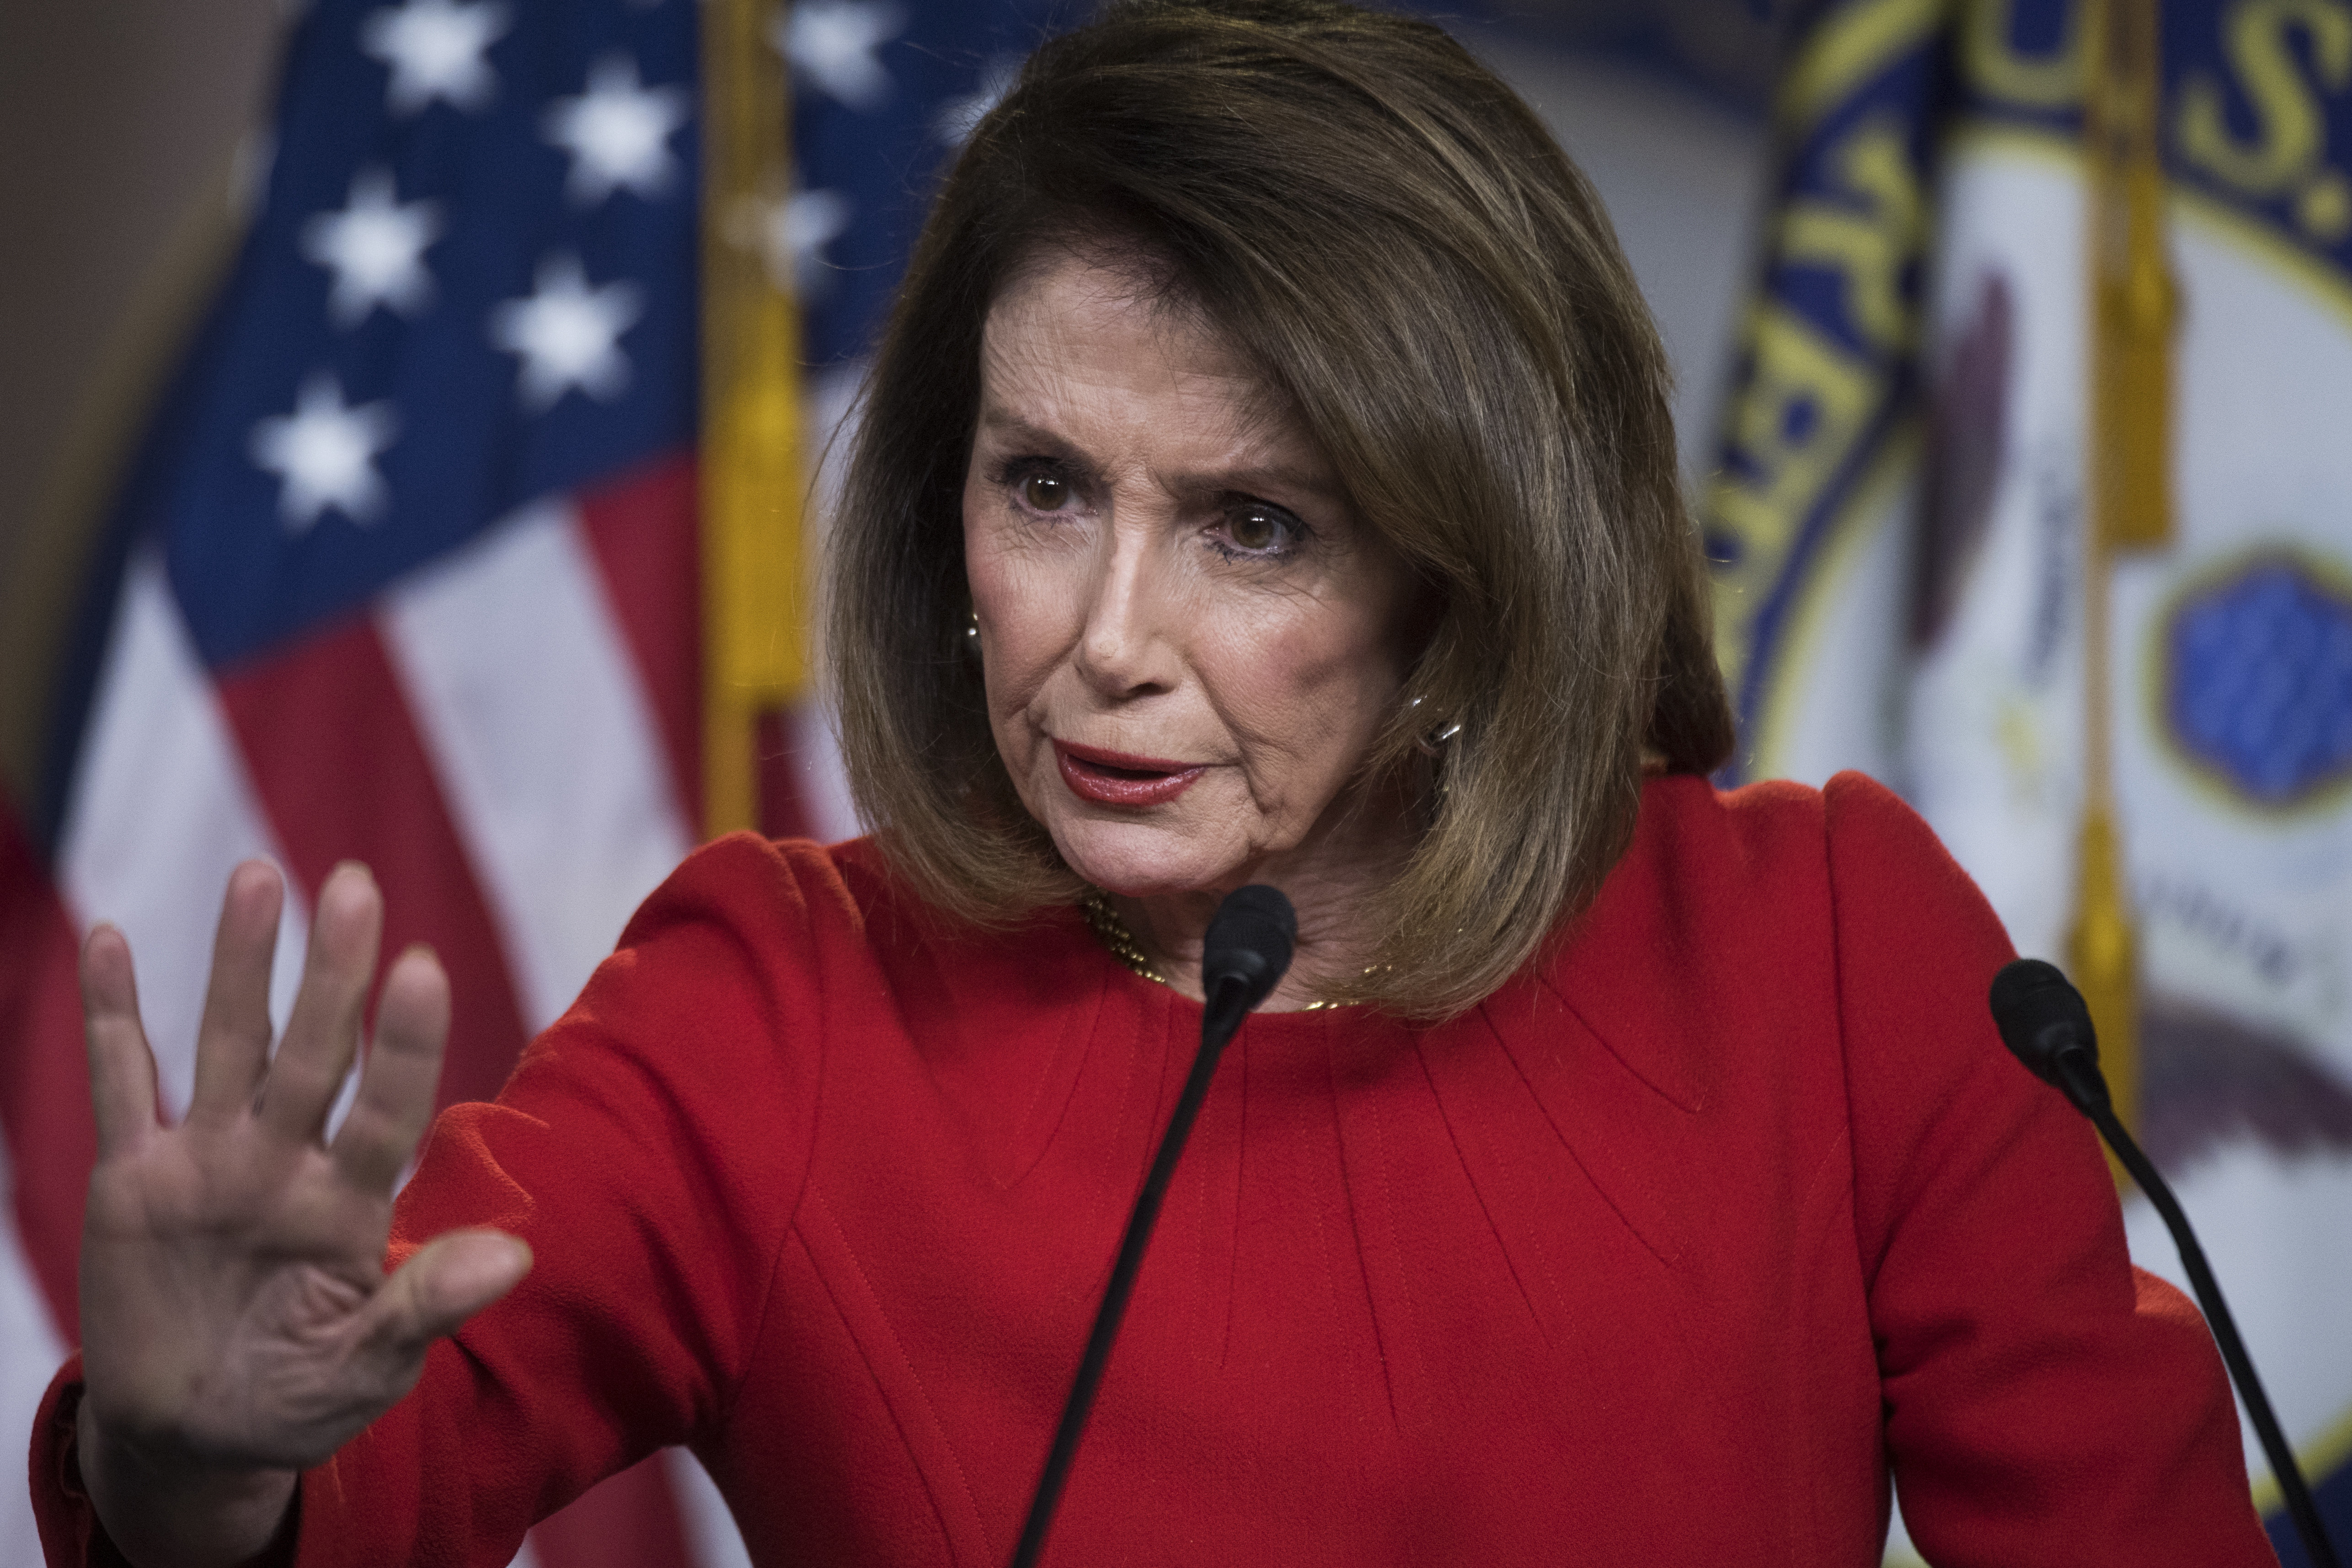 There's wariness that the hearing on Medicare for All could end up supporting House Speaker Nancy Pelosi's positi